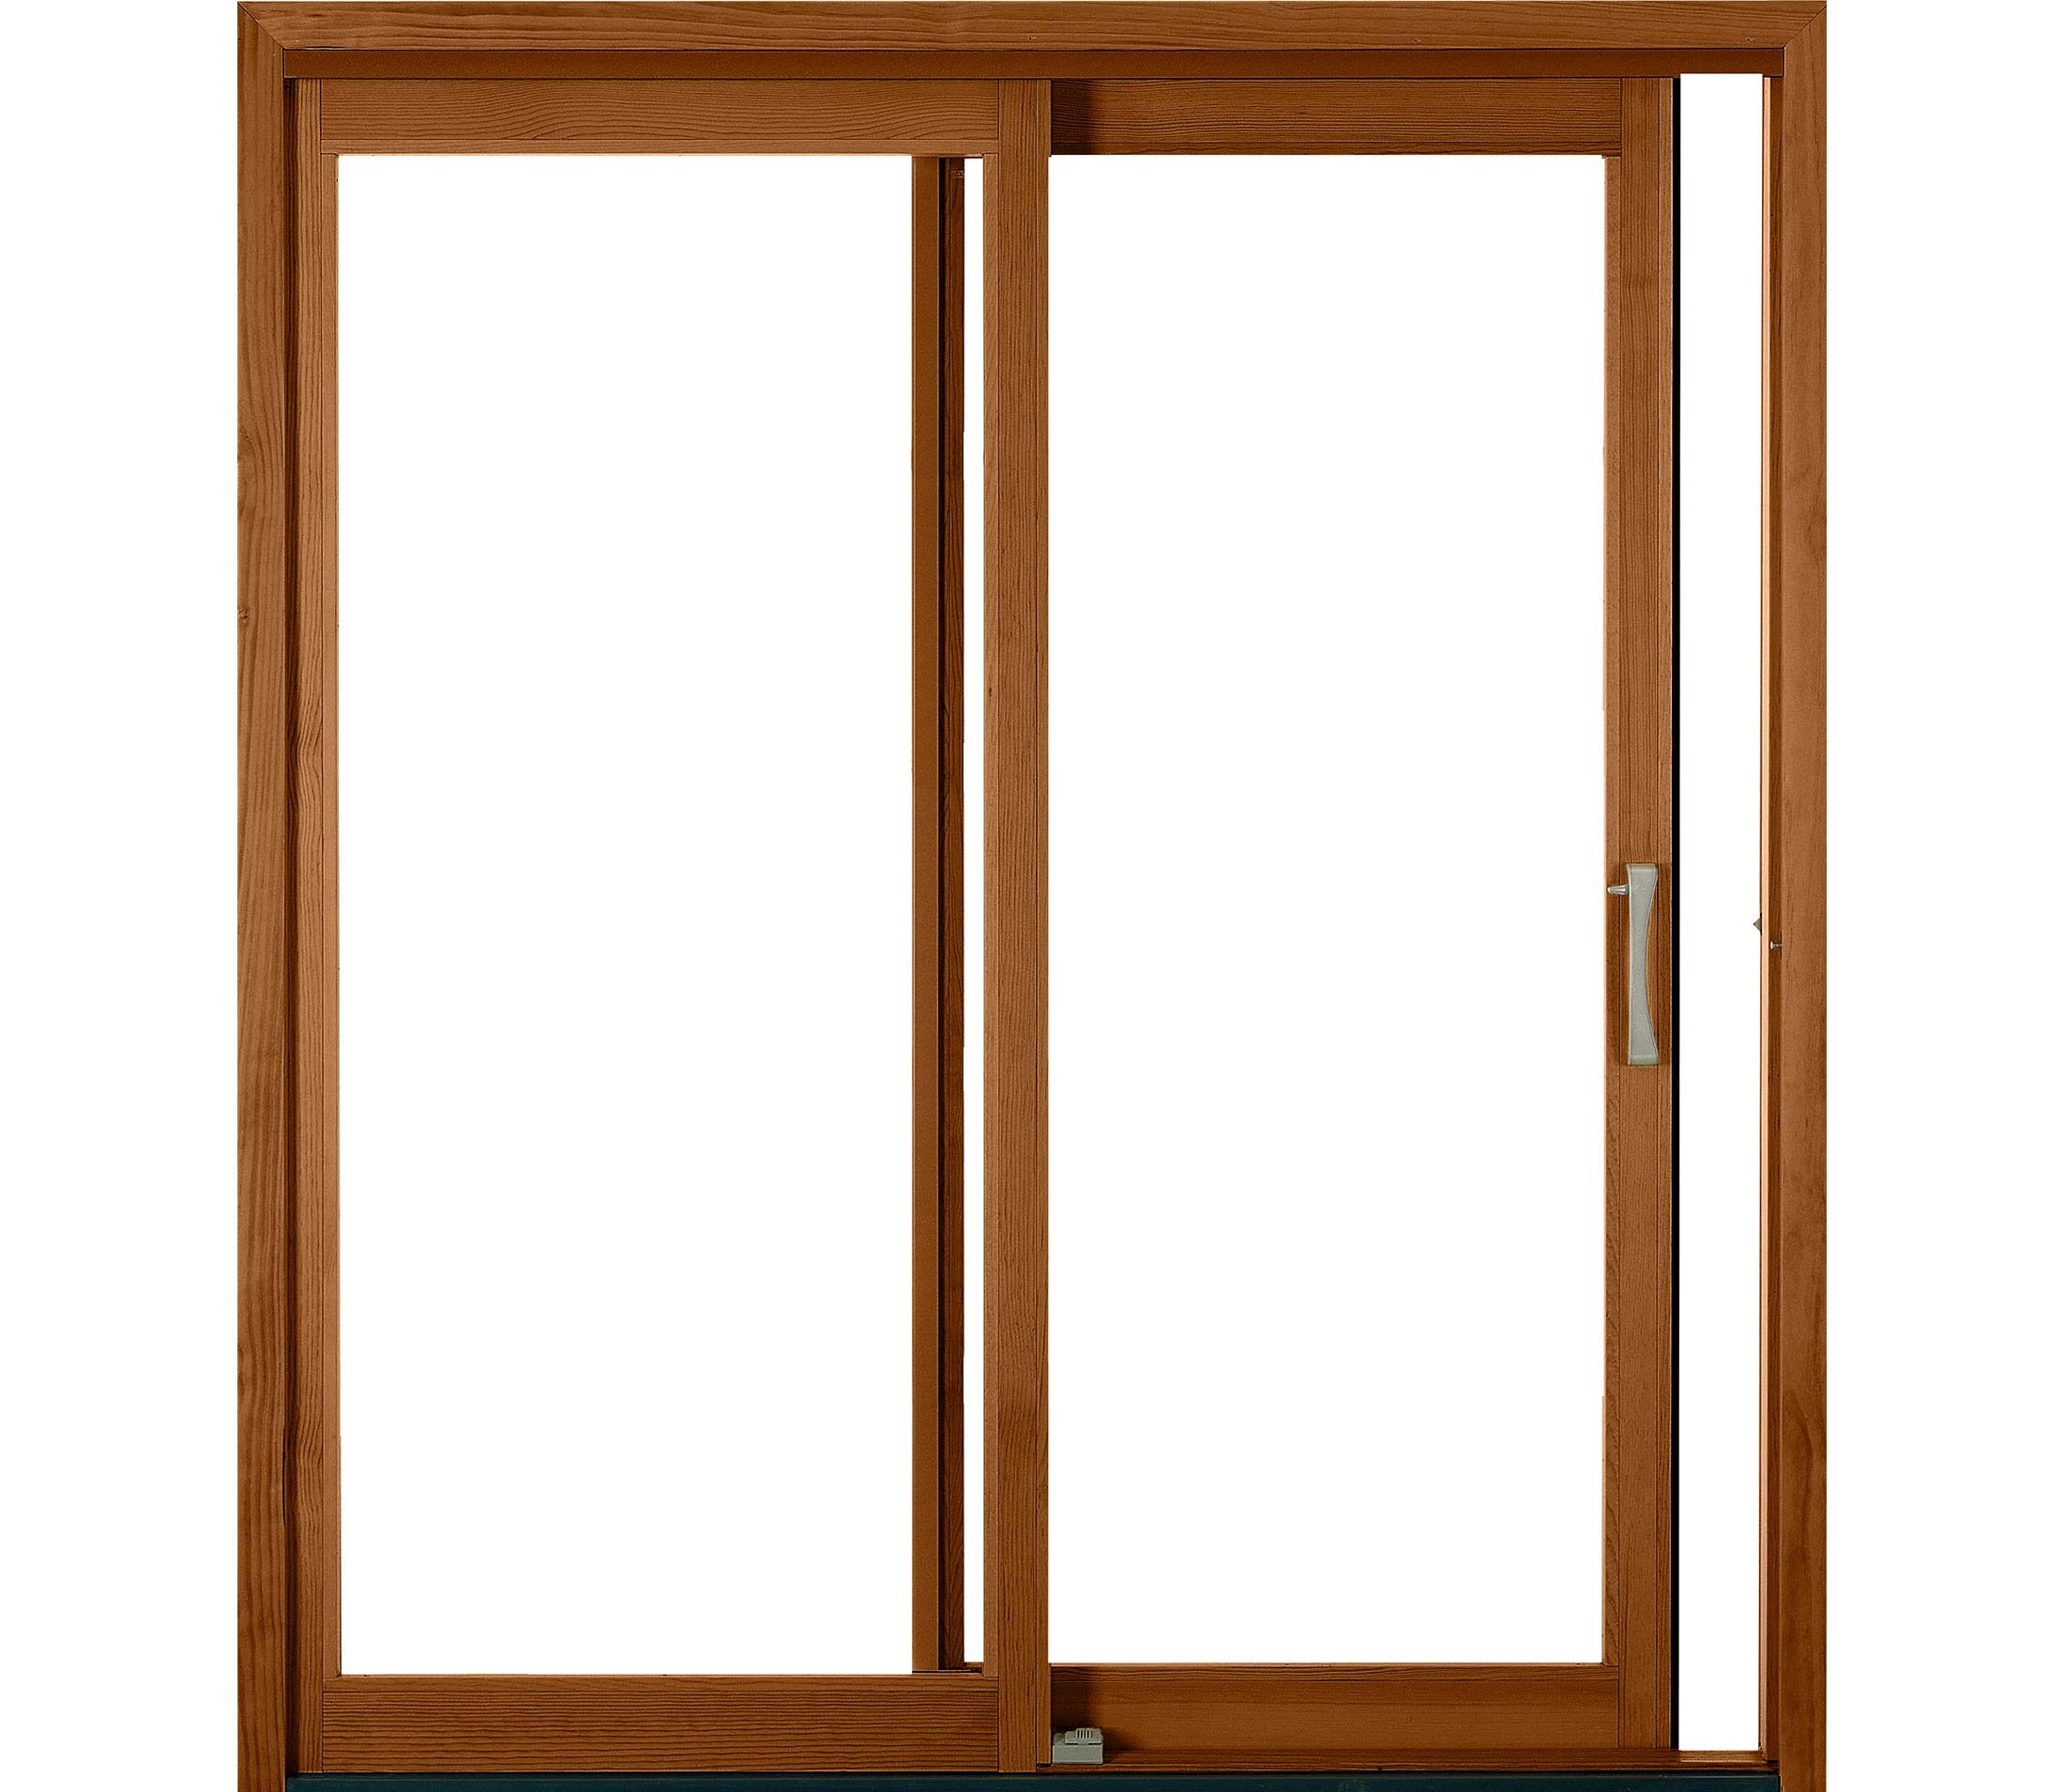 Pella proline 450 series sliding patio door pella modern pella proline 450 series sliding patio door pella eventelaan Image collections